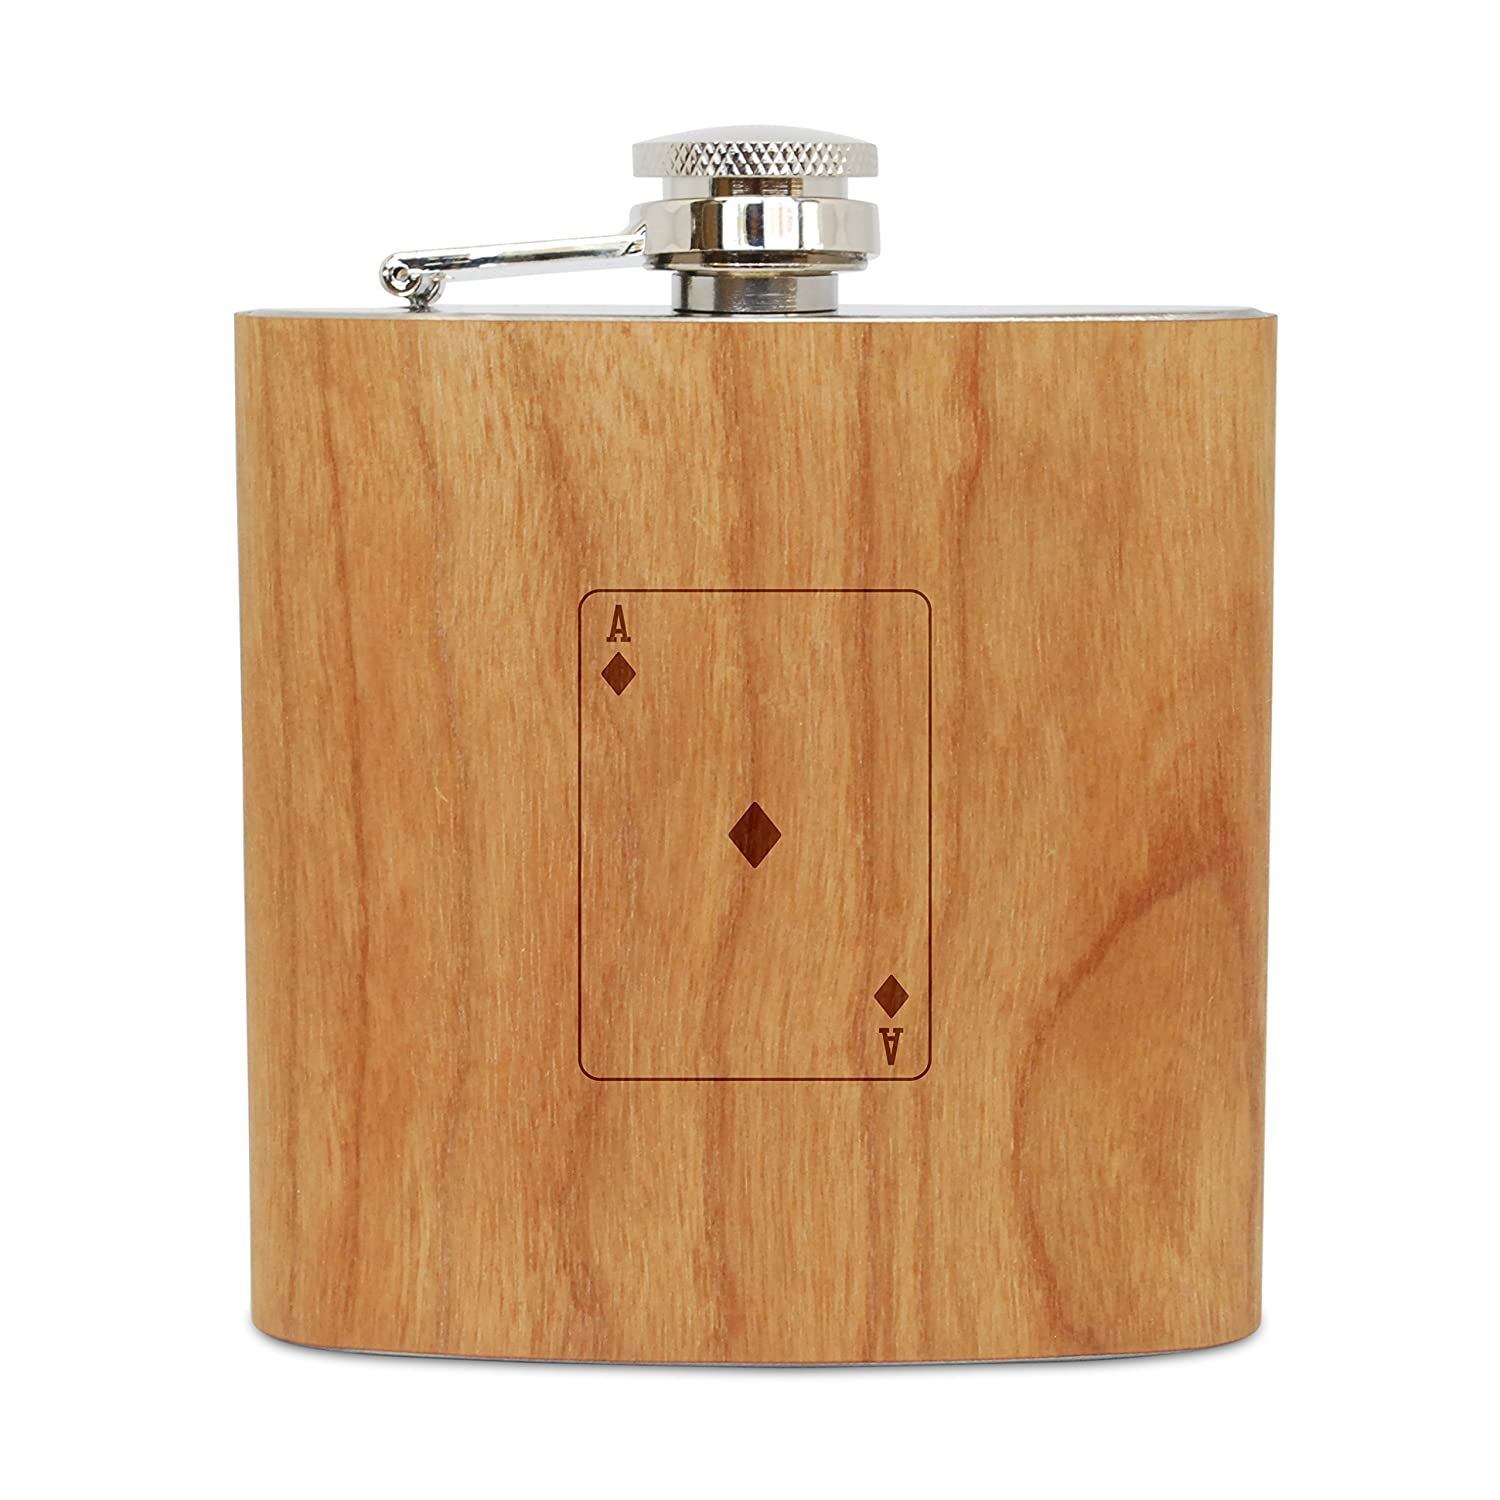 WOODEN ACCESSORIES COMPANY Cherry Wood Flask With Stainless Steel